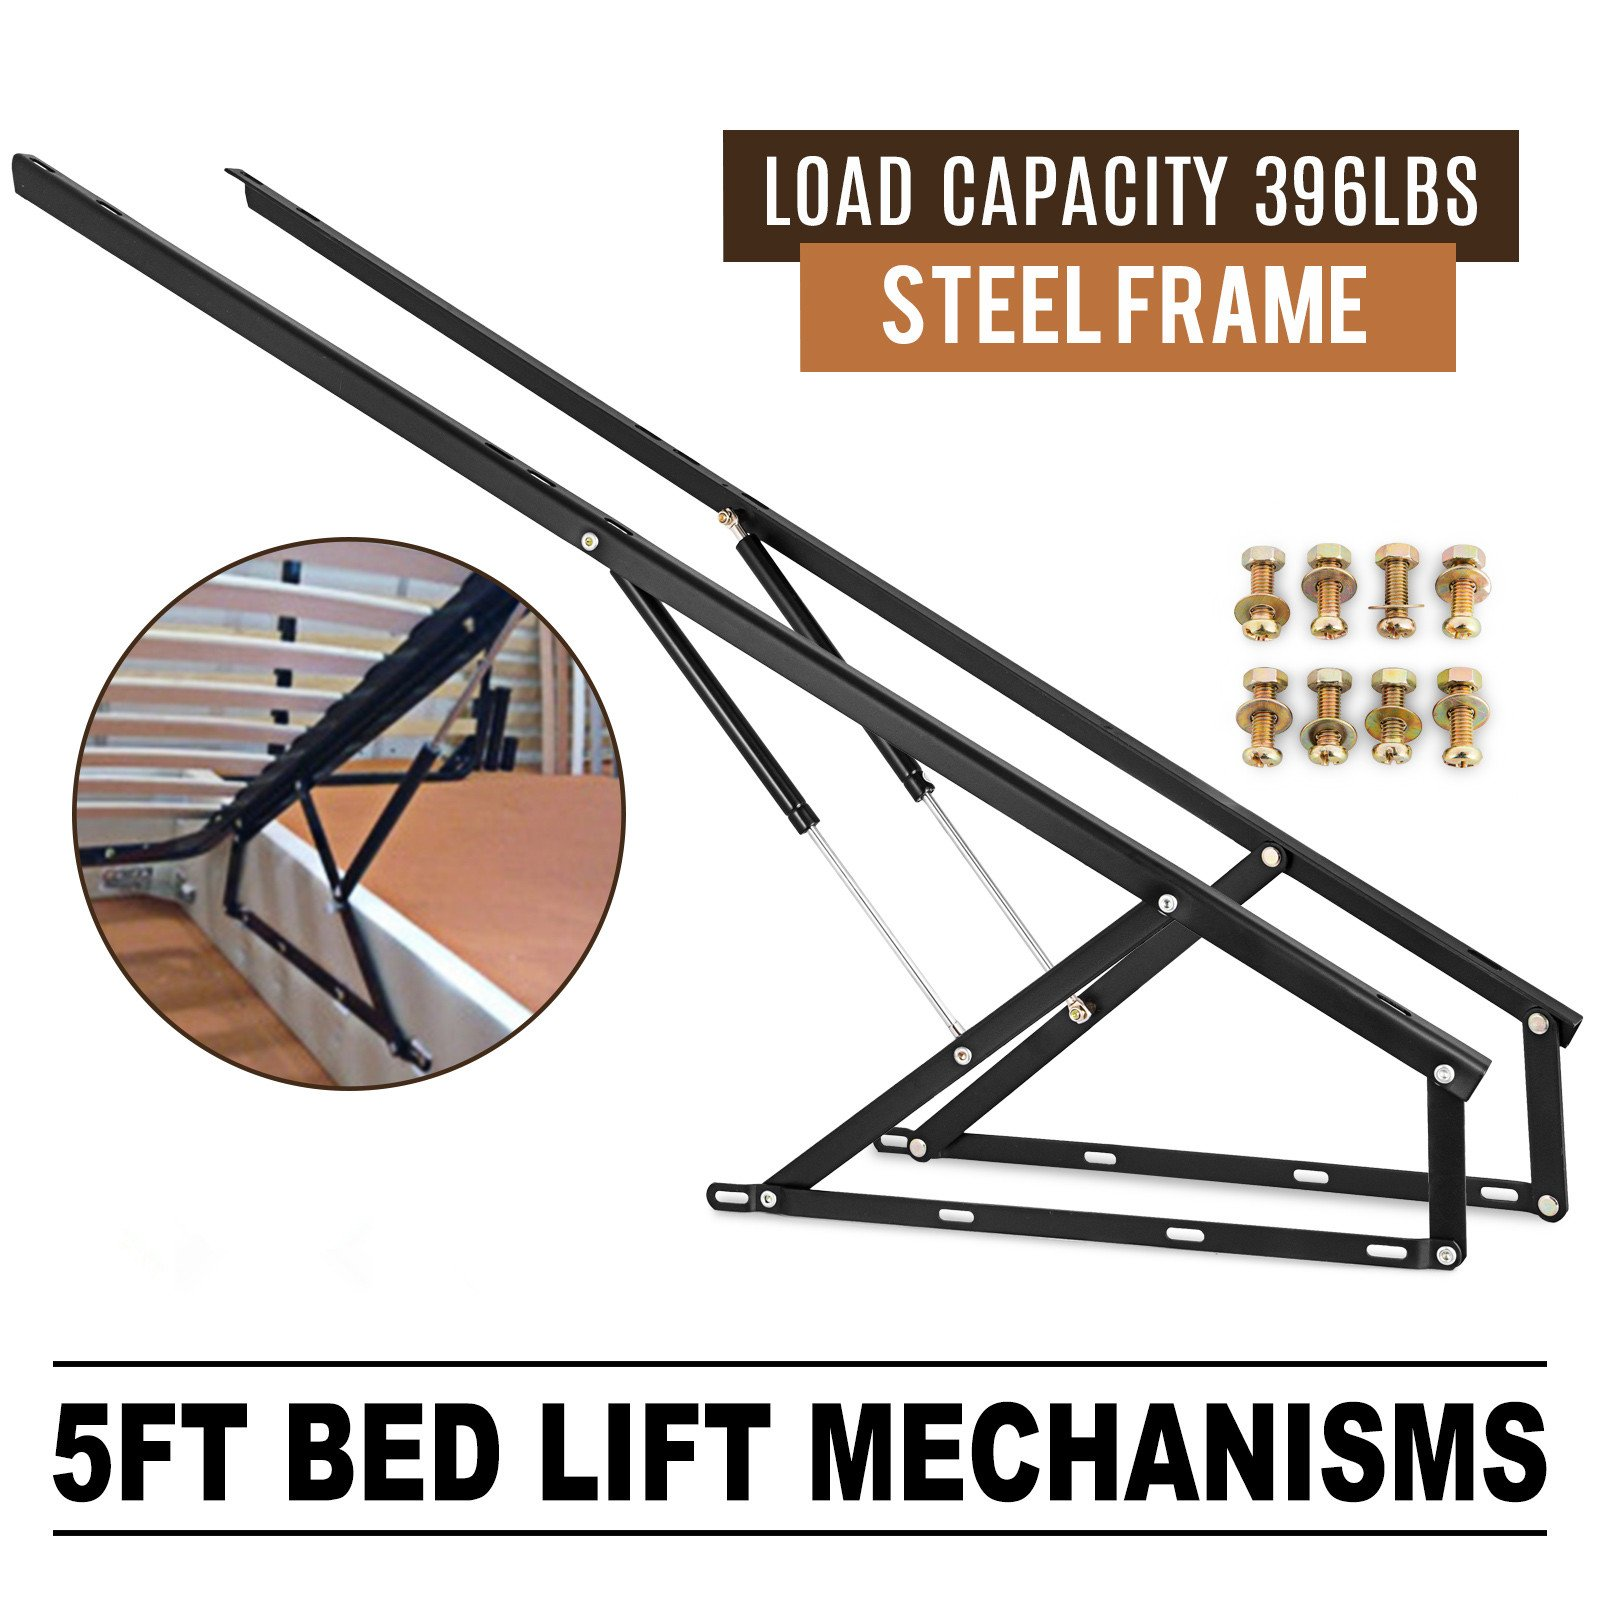 Happybuy Pair of 5FT Pneumatic Storage Bed Lift Mechanism Heavy Duty Gas Spring Bed Storage Lift Kit for Box Bed Sofa Storage Space Saving DIY Project Lifter Lift Up Hardware Black (B150) by Happybuy (Image #2)